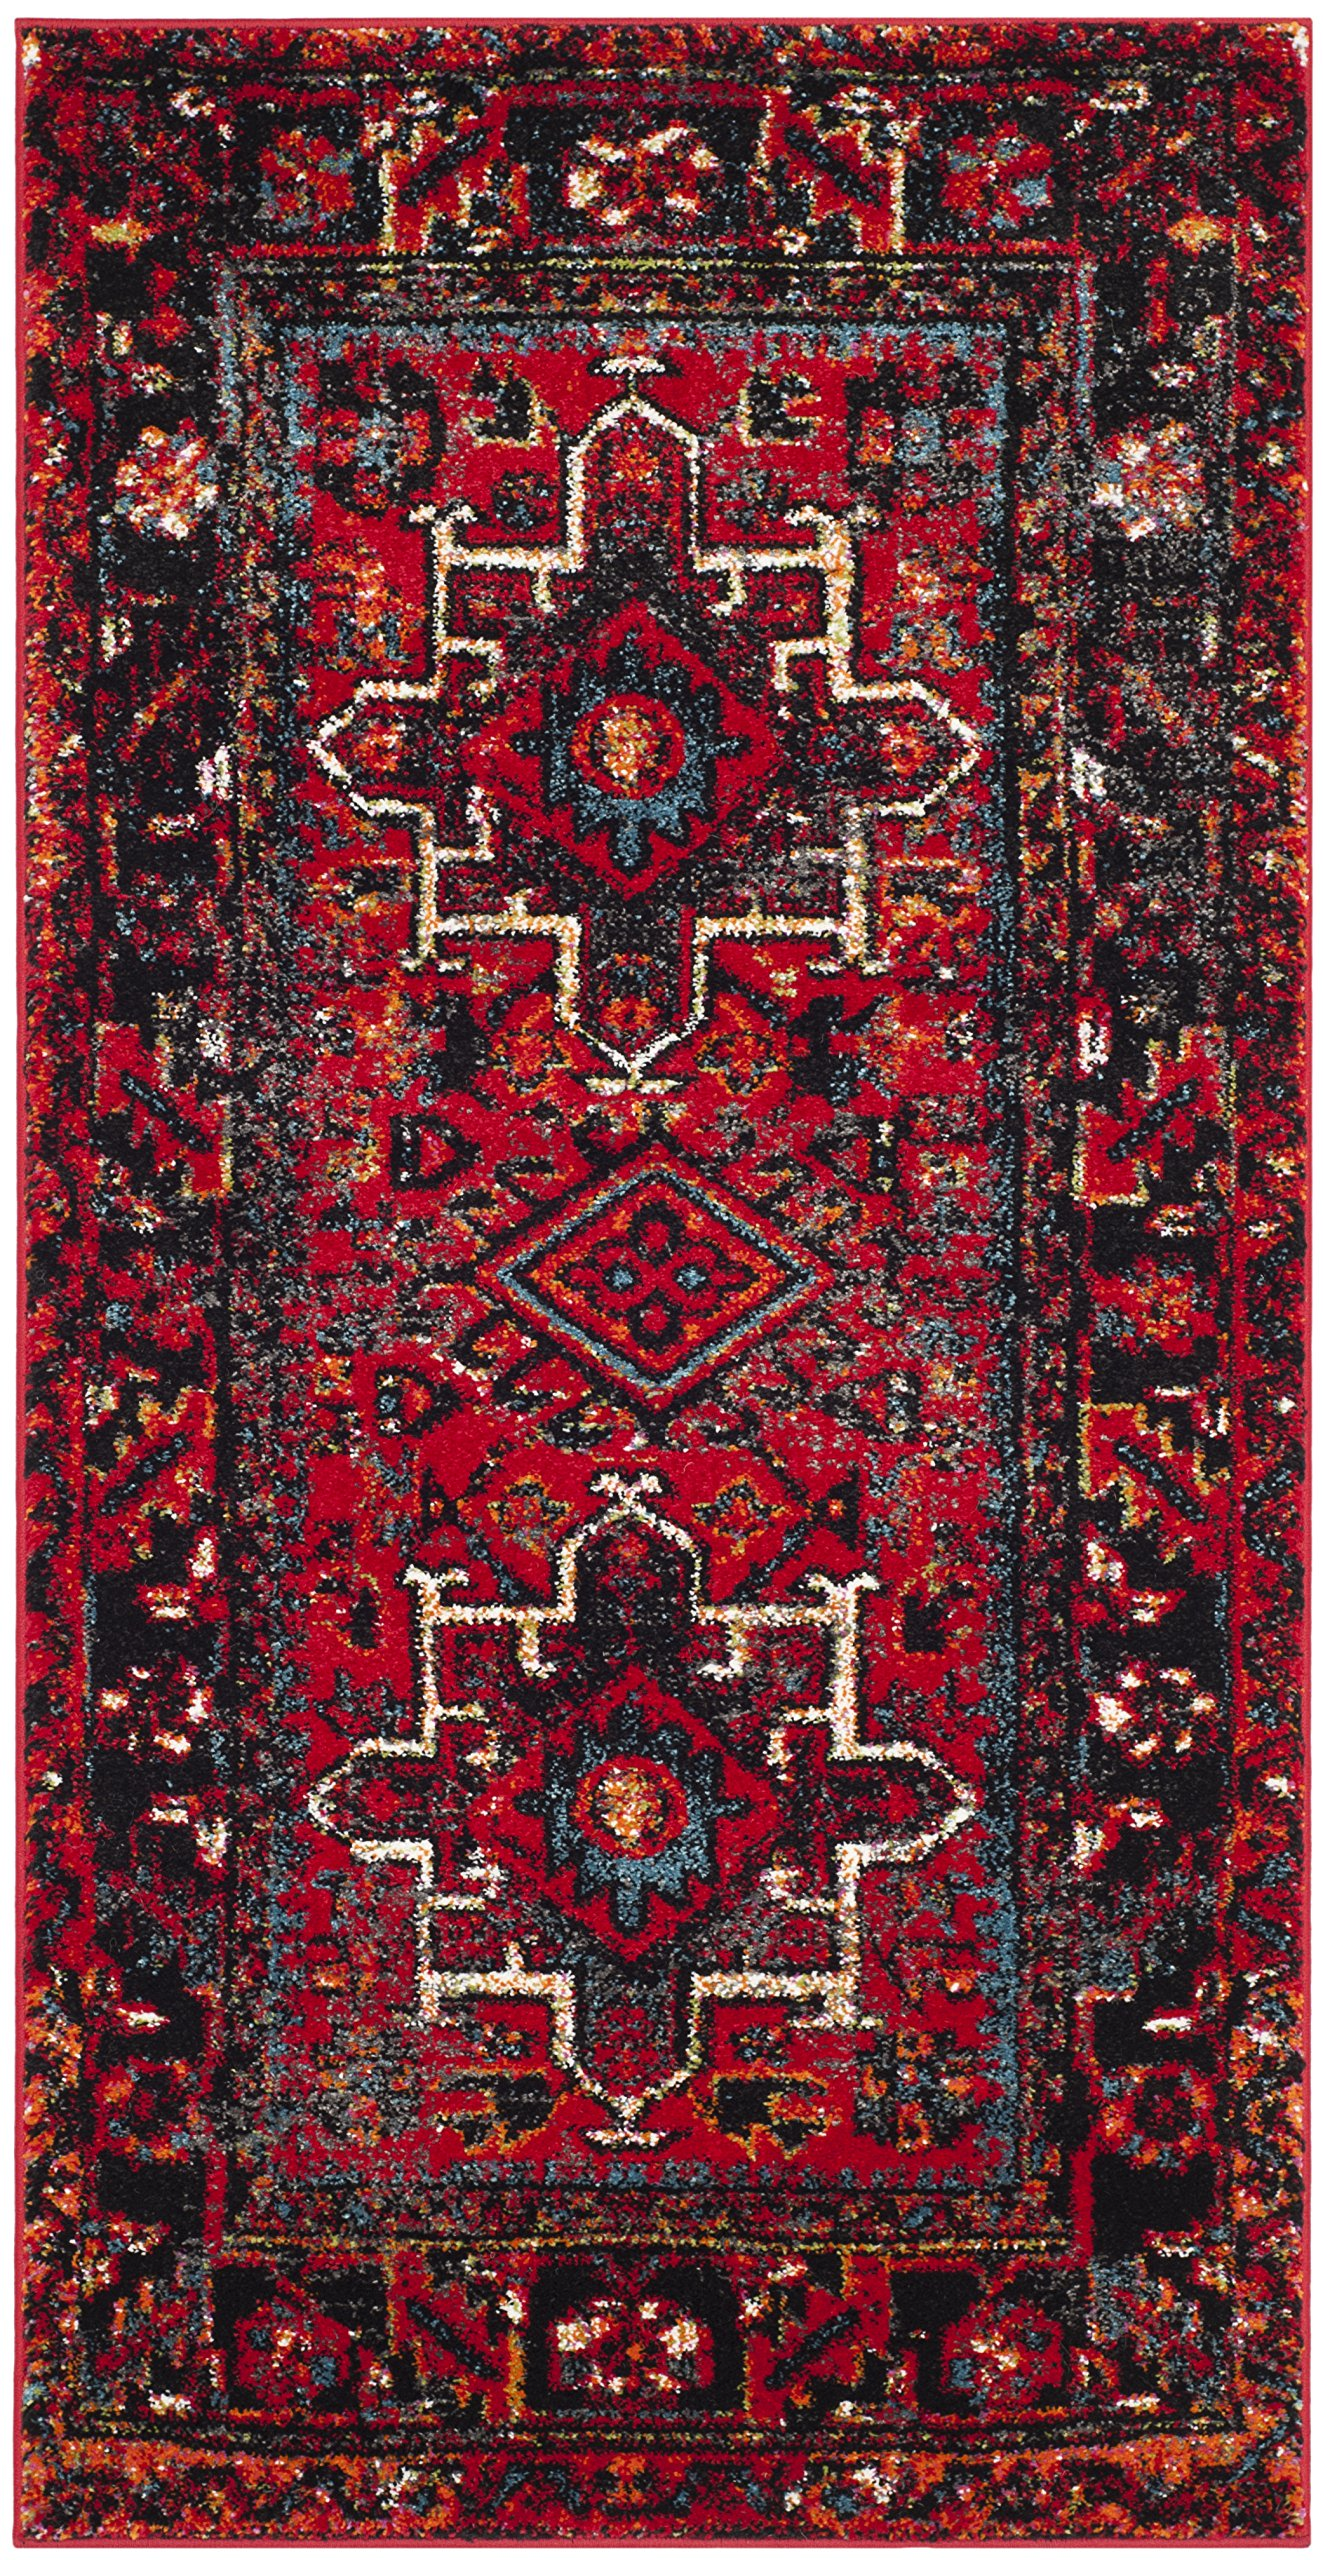 Safavieh Vintage Hamadan Collection Vth211a Oriental Traditional Persian Non Shedding Stain Resistant Living Room Bedroom Area Rug 2 7 X 5 Red Multi Furniture Decor